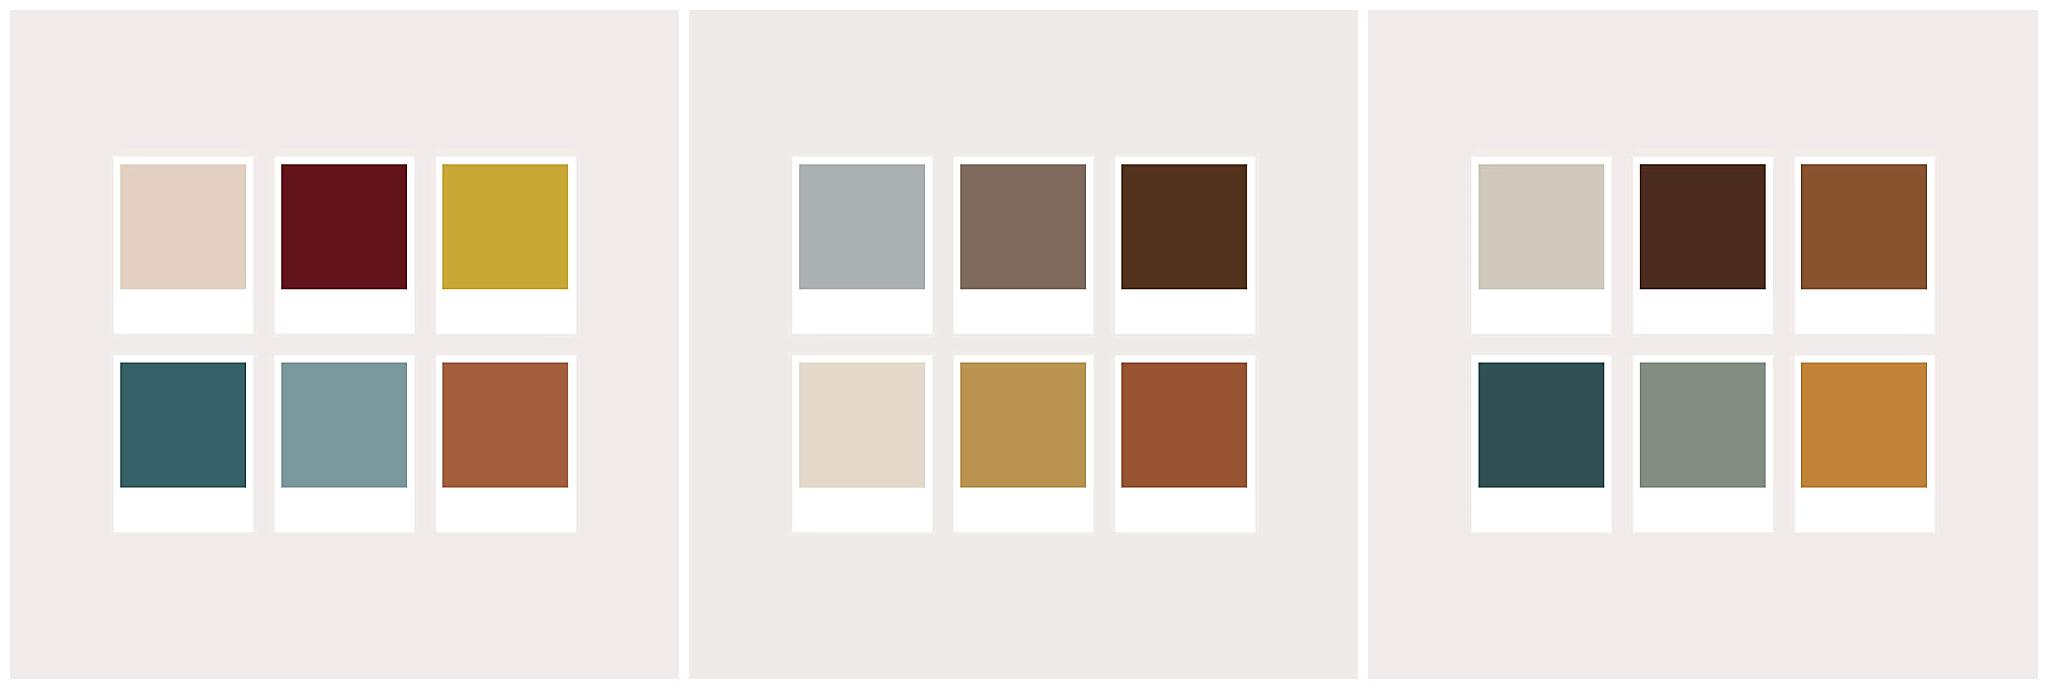 collage of colors to wear for family photos